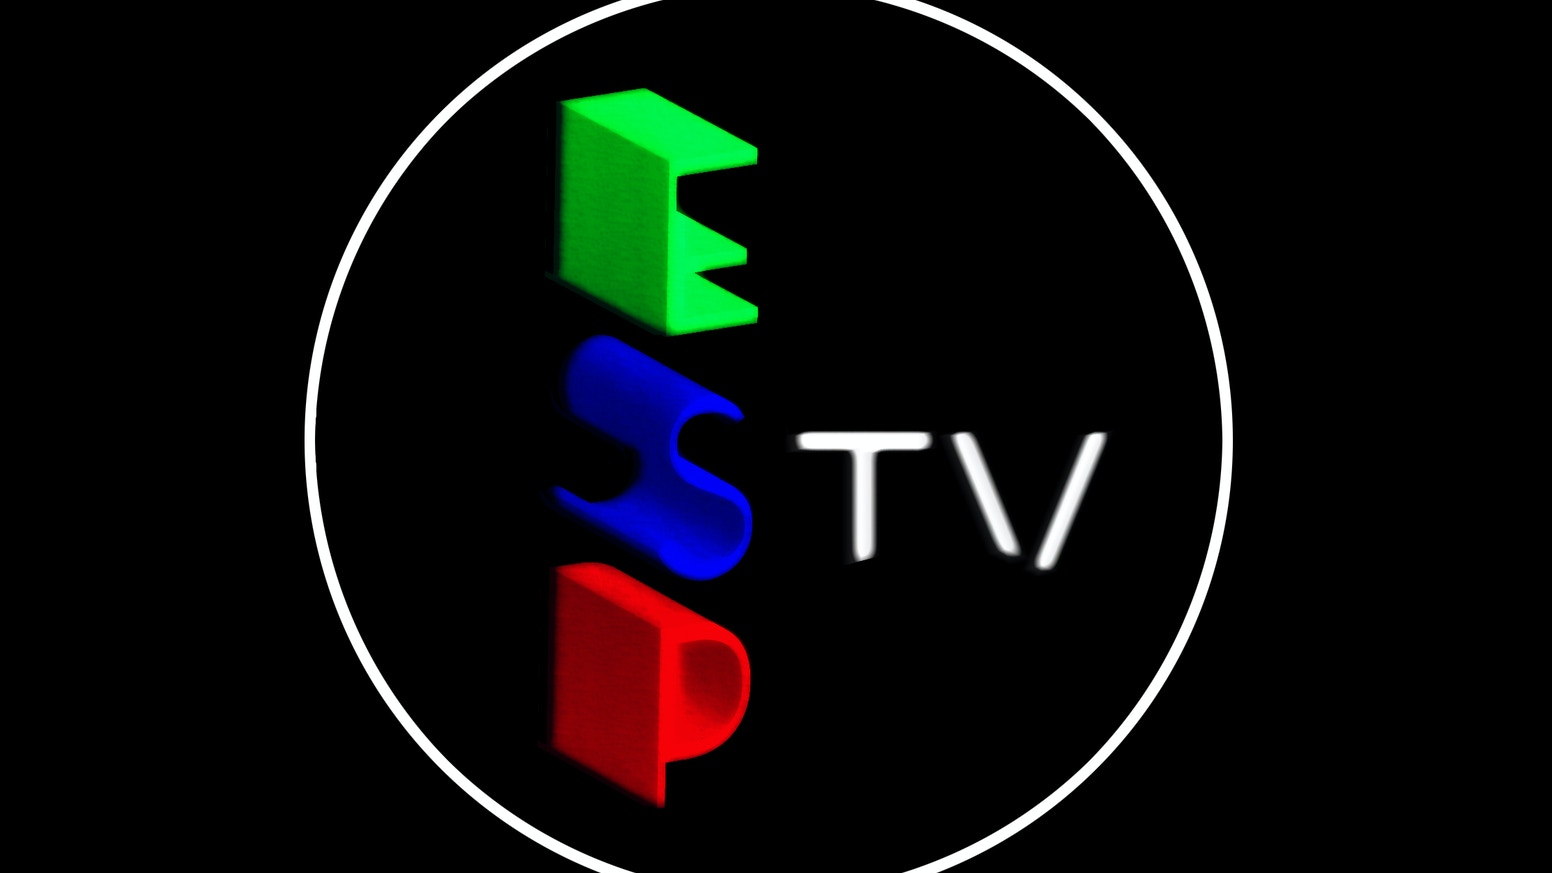 E.S.P. TV hybridizes technologies old and new, contemporary and obsolete, to realize the live television studio as a site for performance-based works.